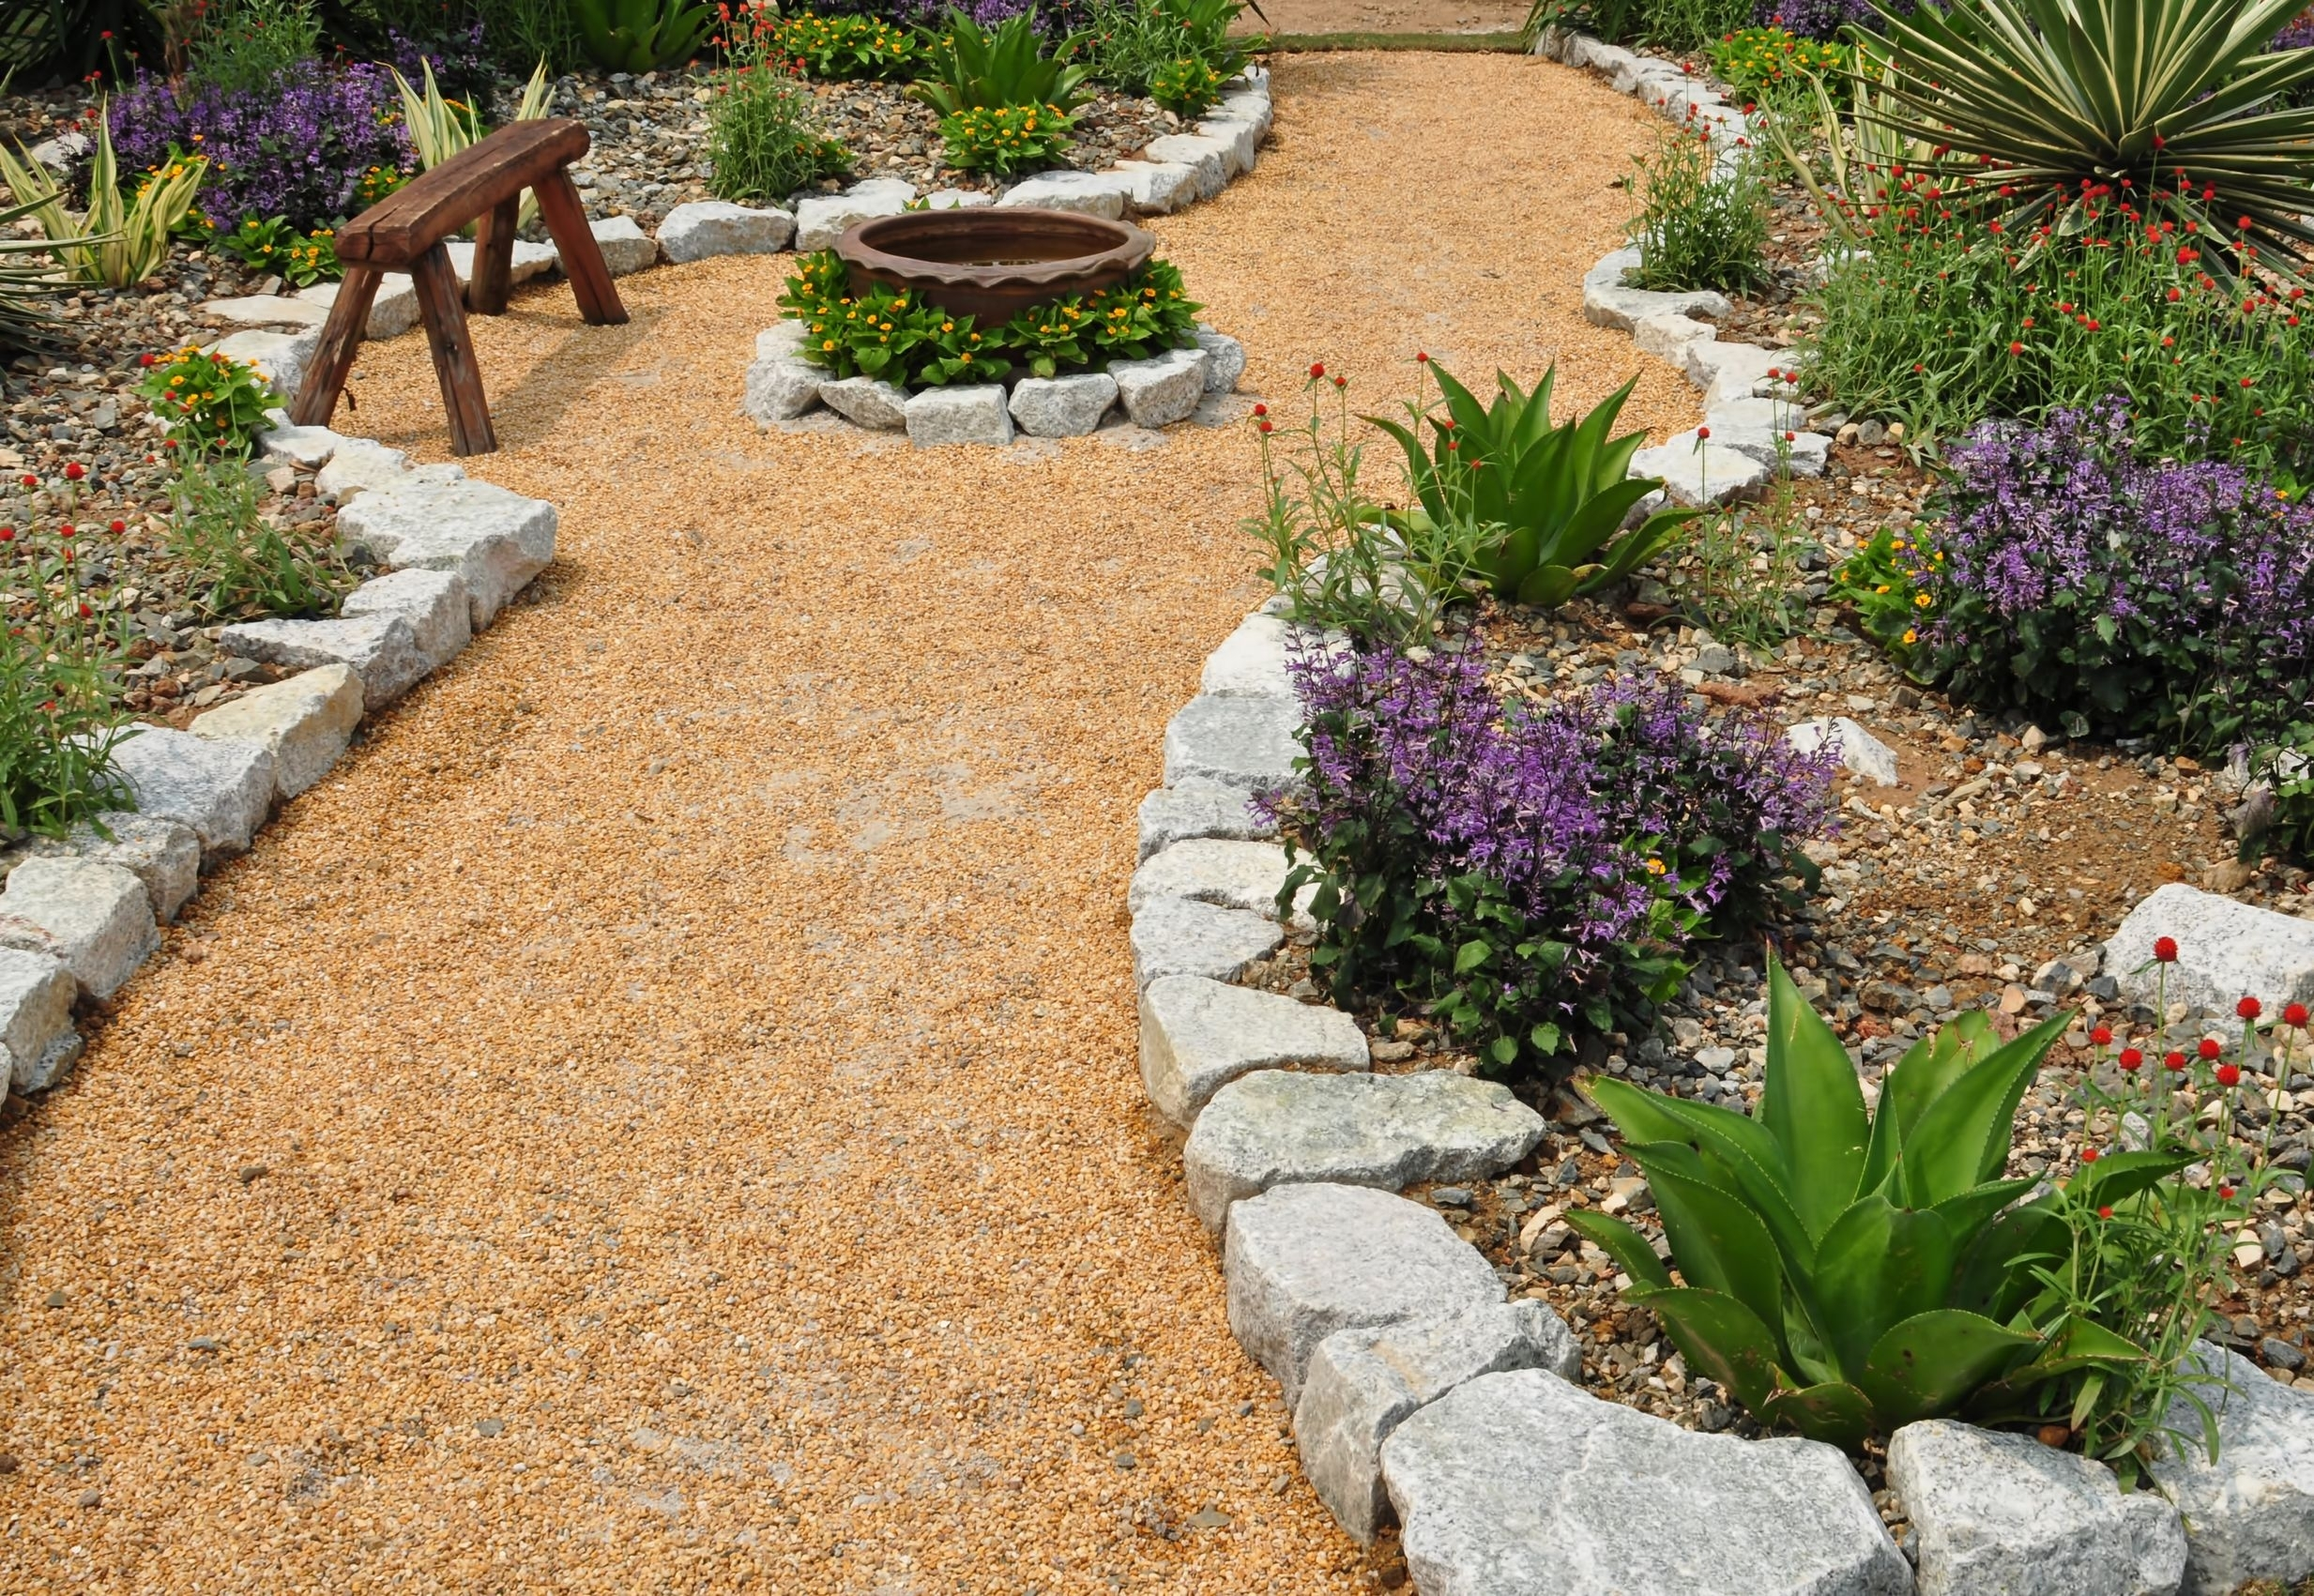 Image of: Drought Resistant Landscaping Ideas Drought Tolerant Landscape For Drought Tolerant Landscape Ideas Popular Drought Tolerant Landscape Ideas